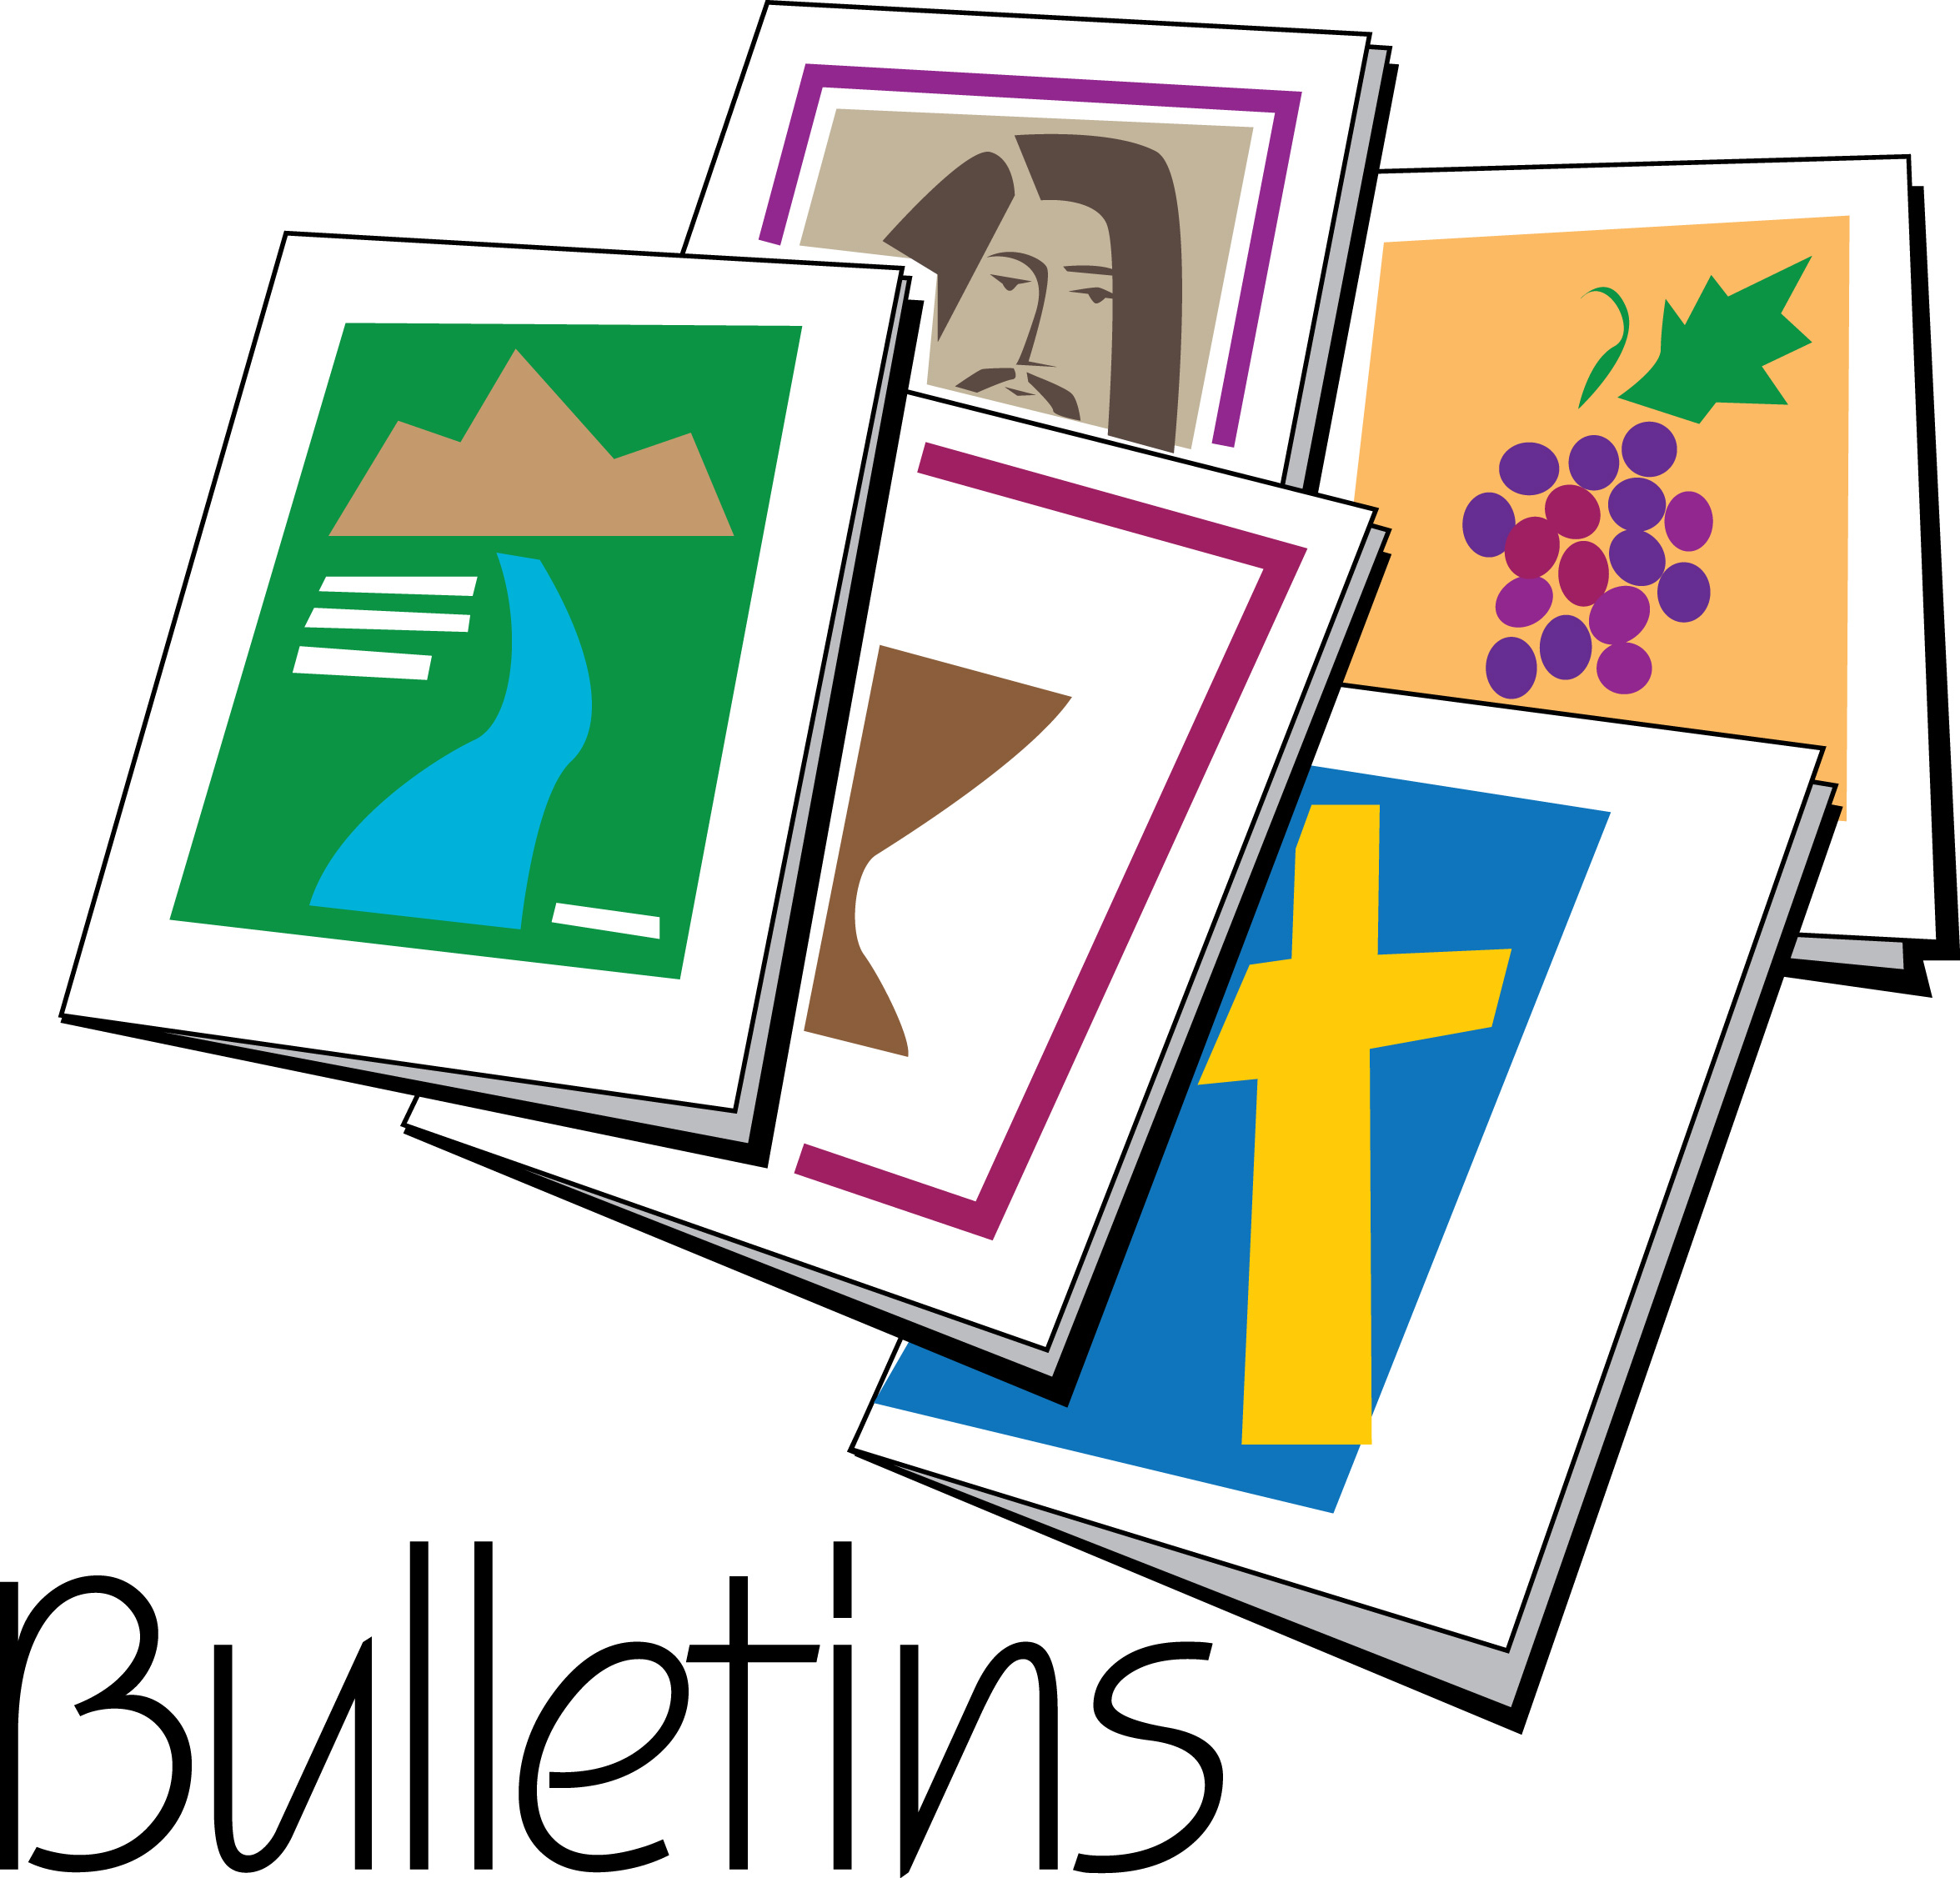 Church Bulletin Clip Art Clipart Best